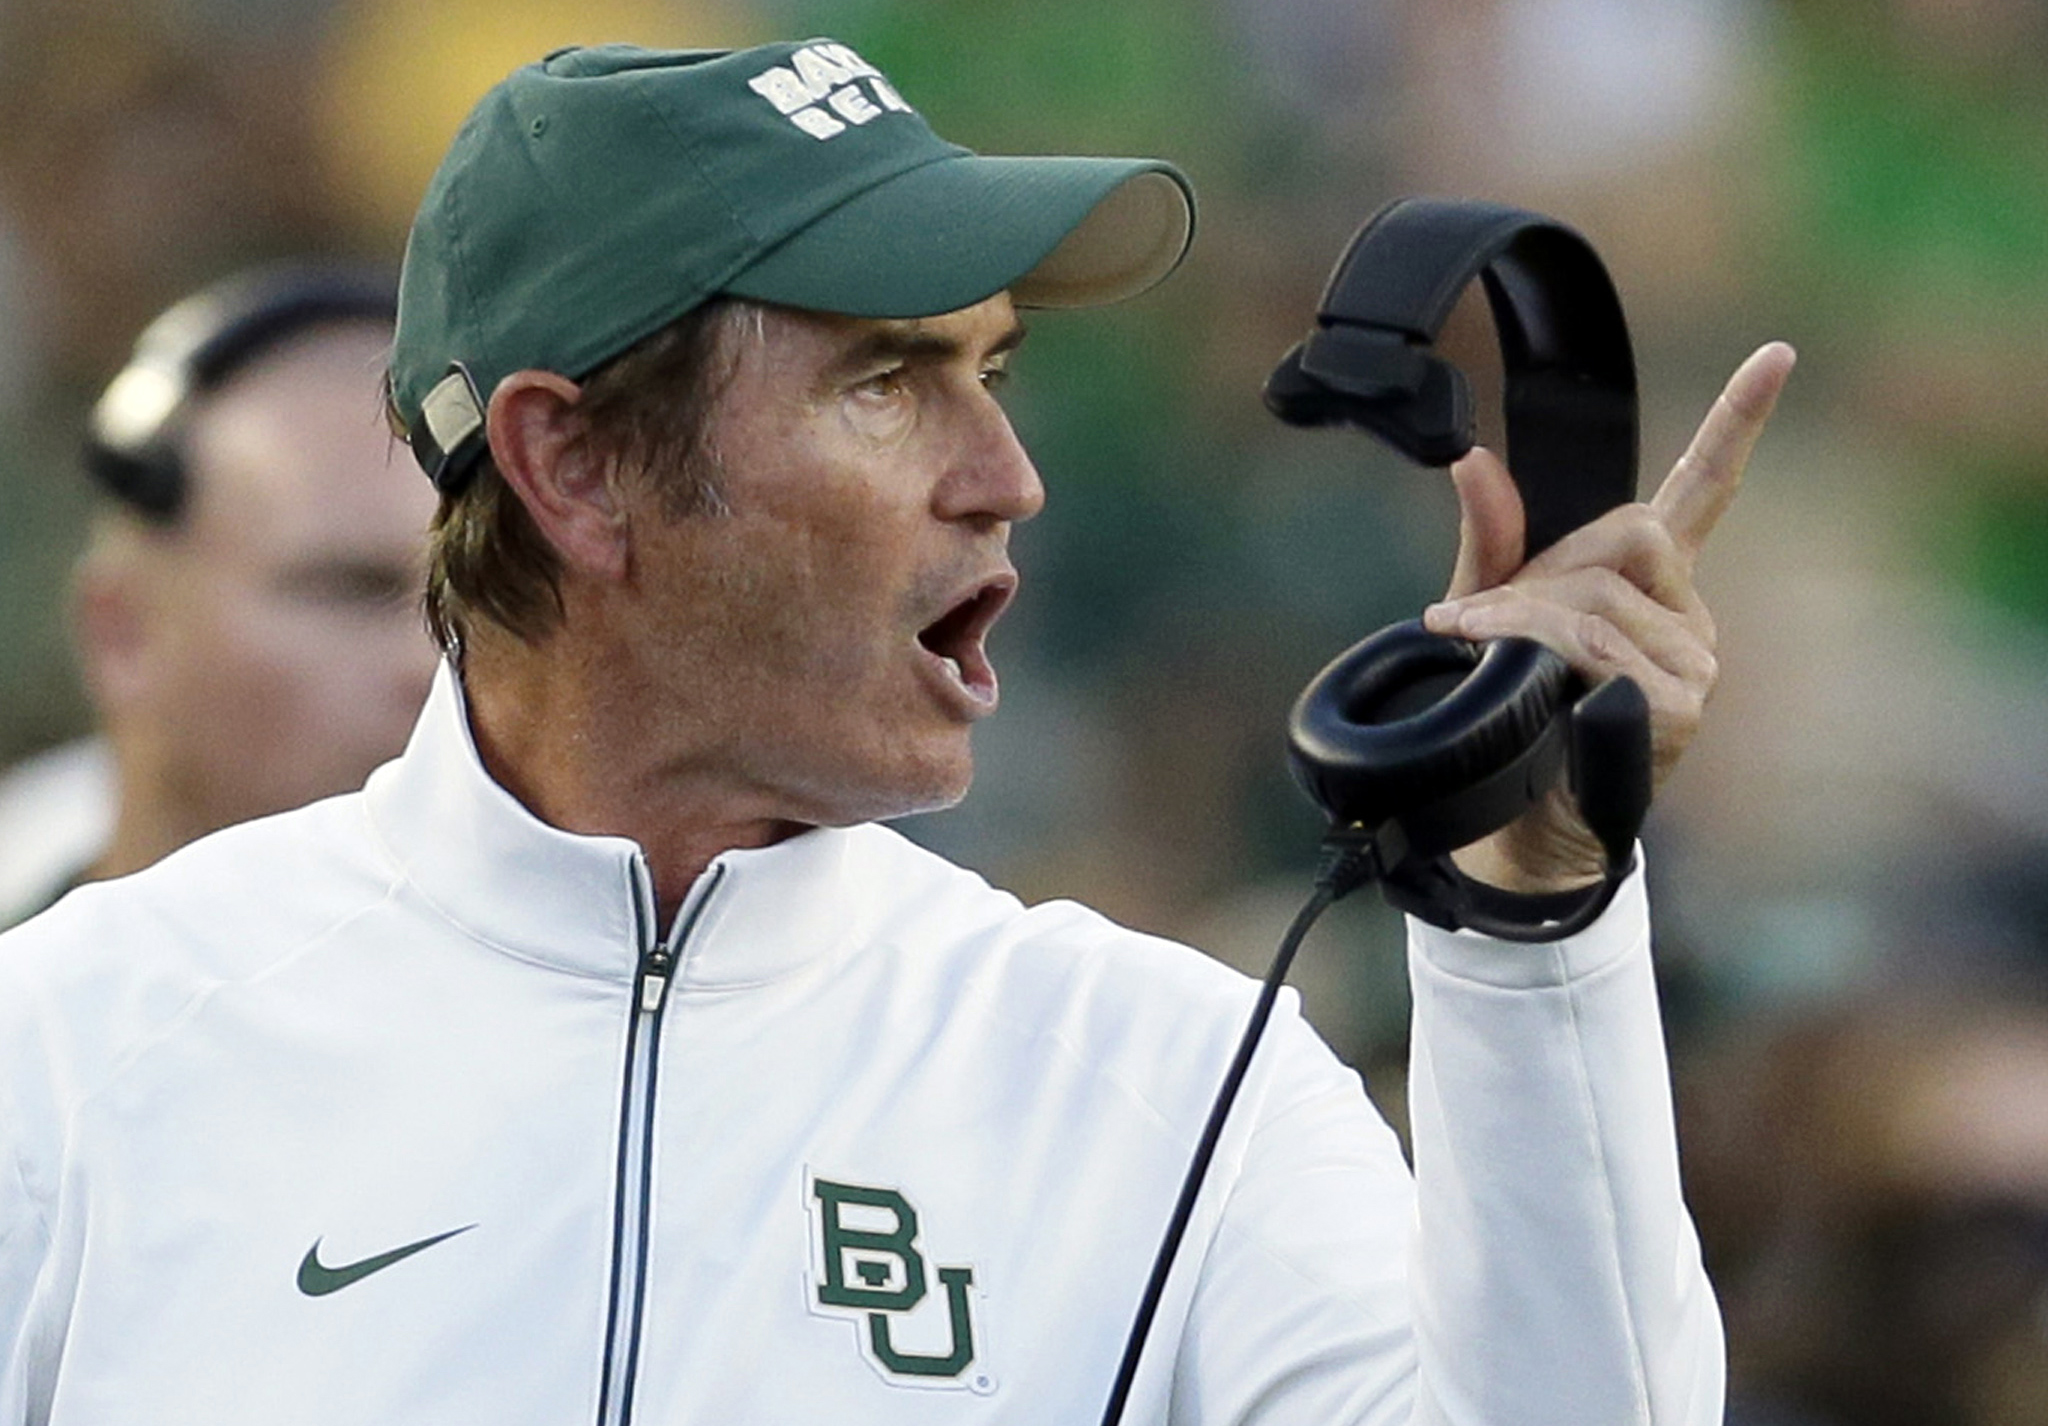 FILE - In this Sept. 12, 2015, file photo, Baylor coach Art Briles yells from the sideline during the first half of an NCAA college football game against Lamar in Waco, Texas. Briles is accusing Baylor of wrongful termination and indicating he has no inte